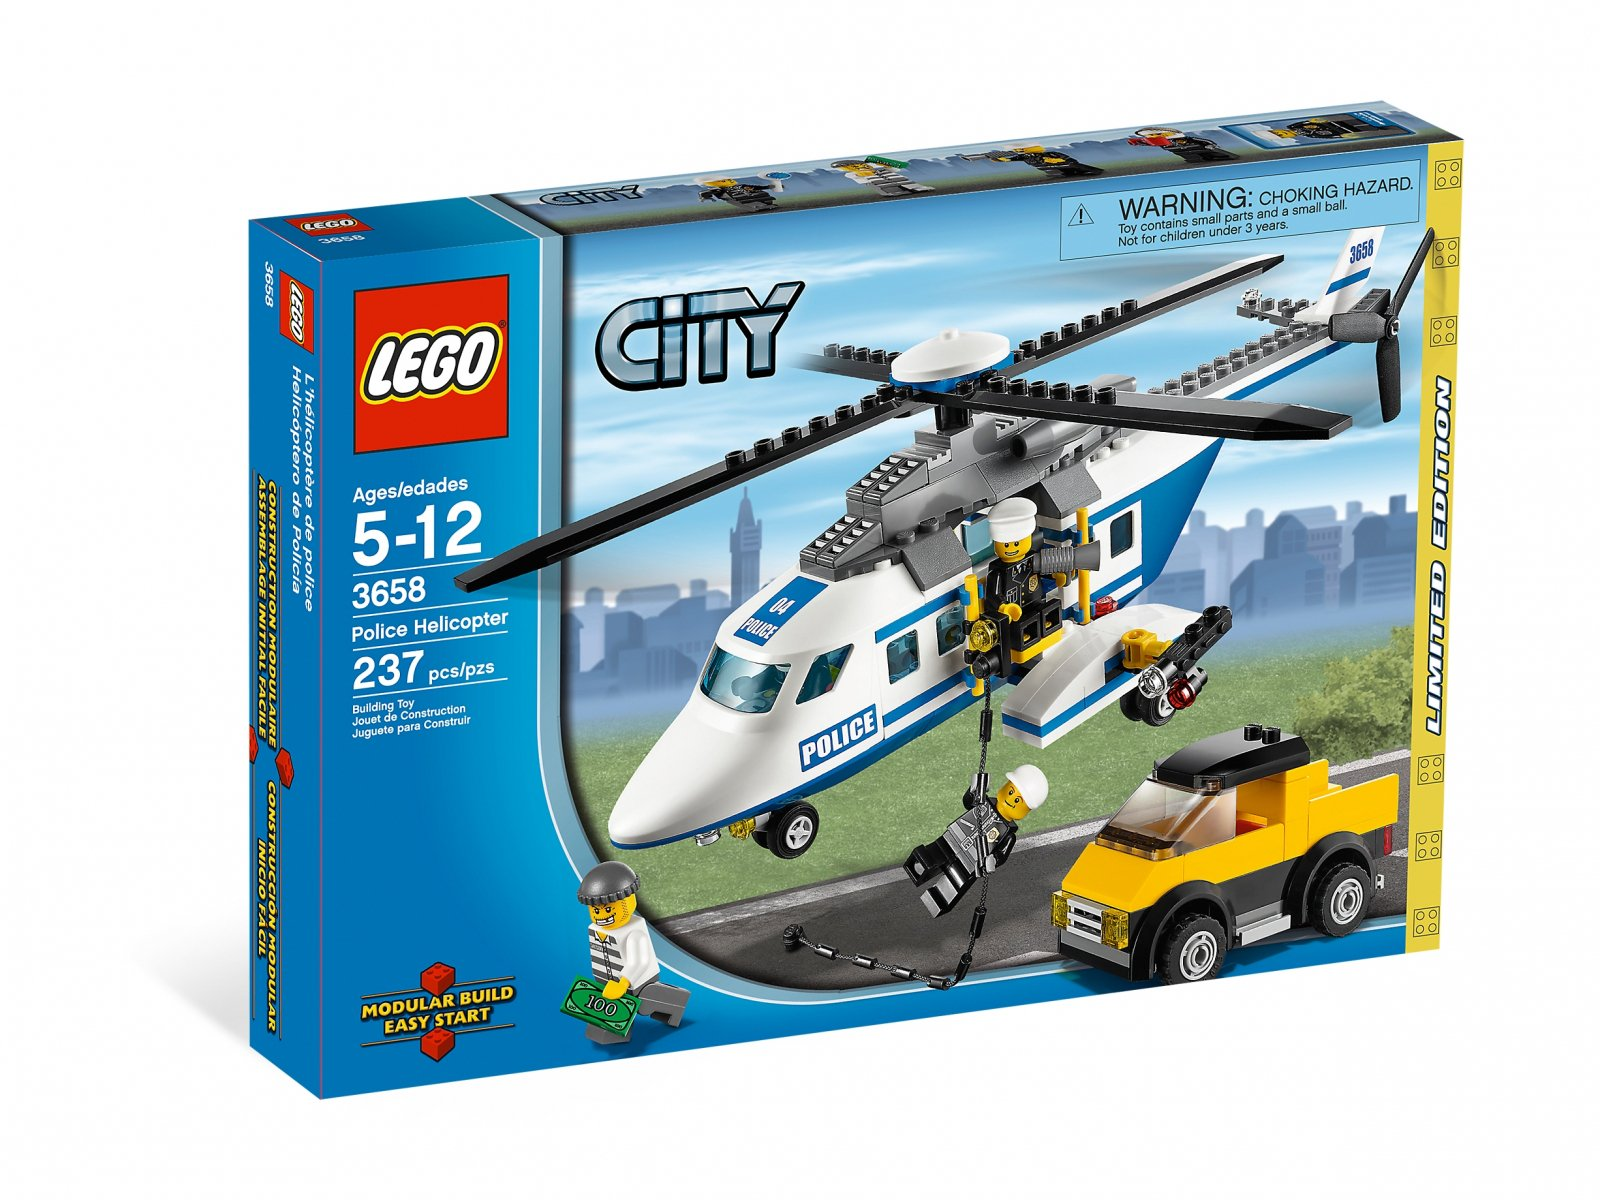 LEGO City Police Helicopter 3658